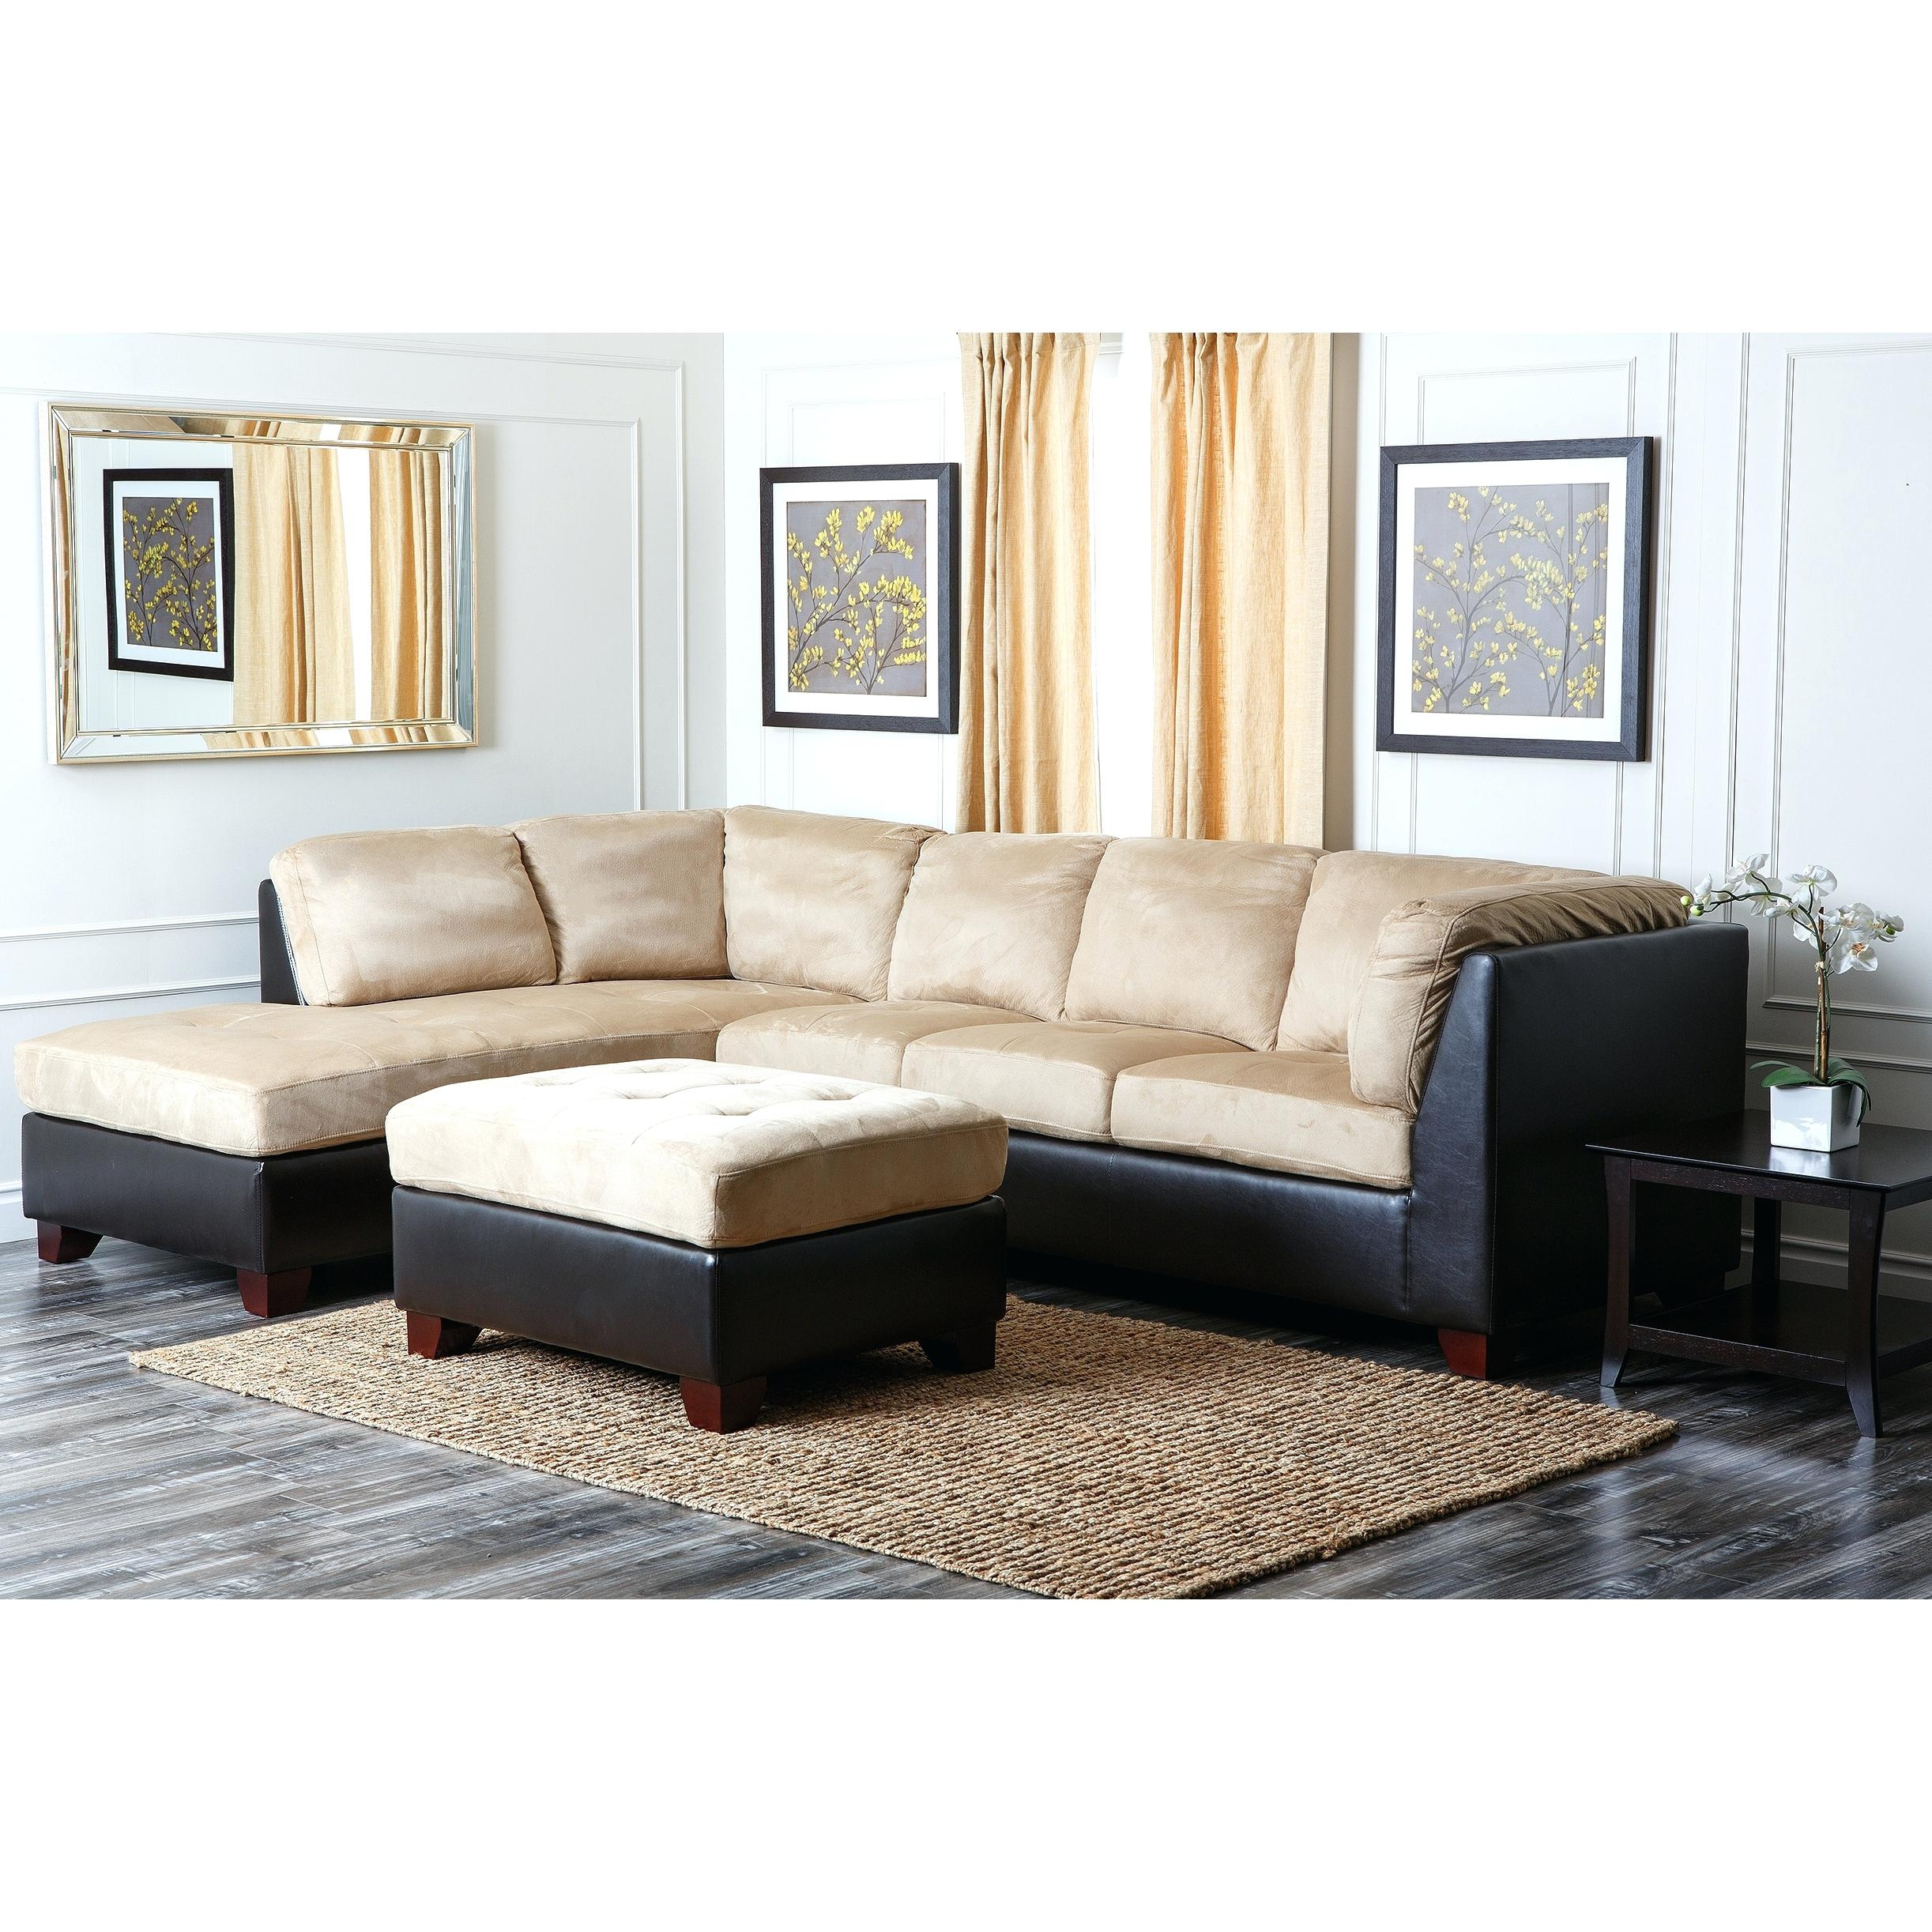 Viewing s of Abbyson Living Charlotte Beige Sectional Sofa